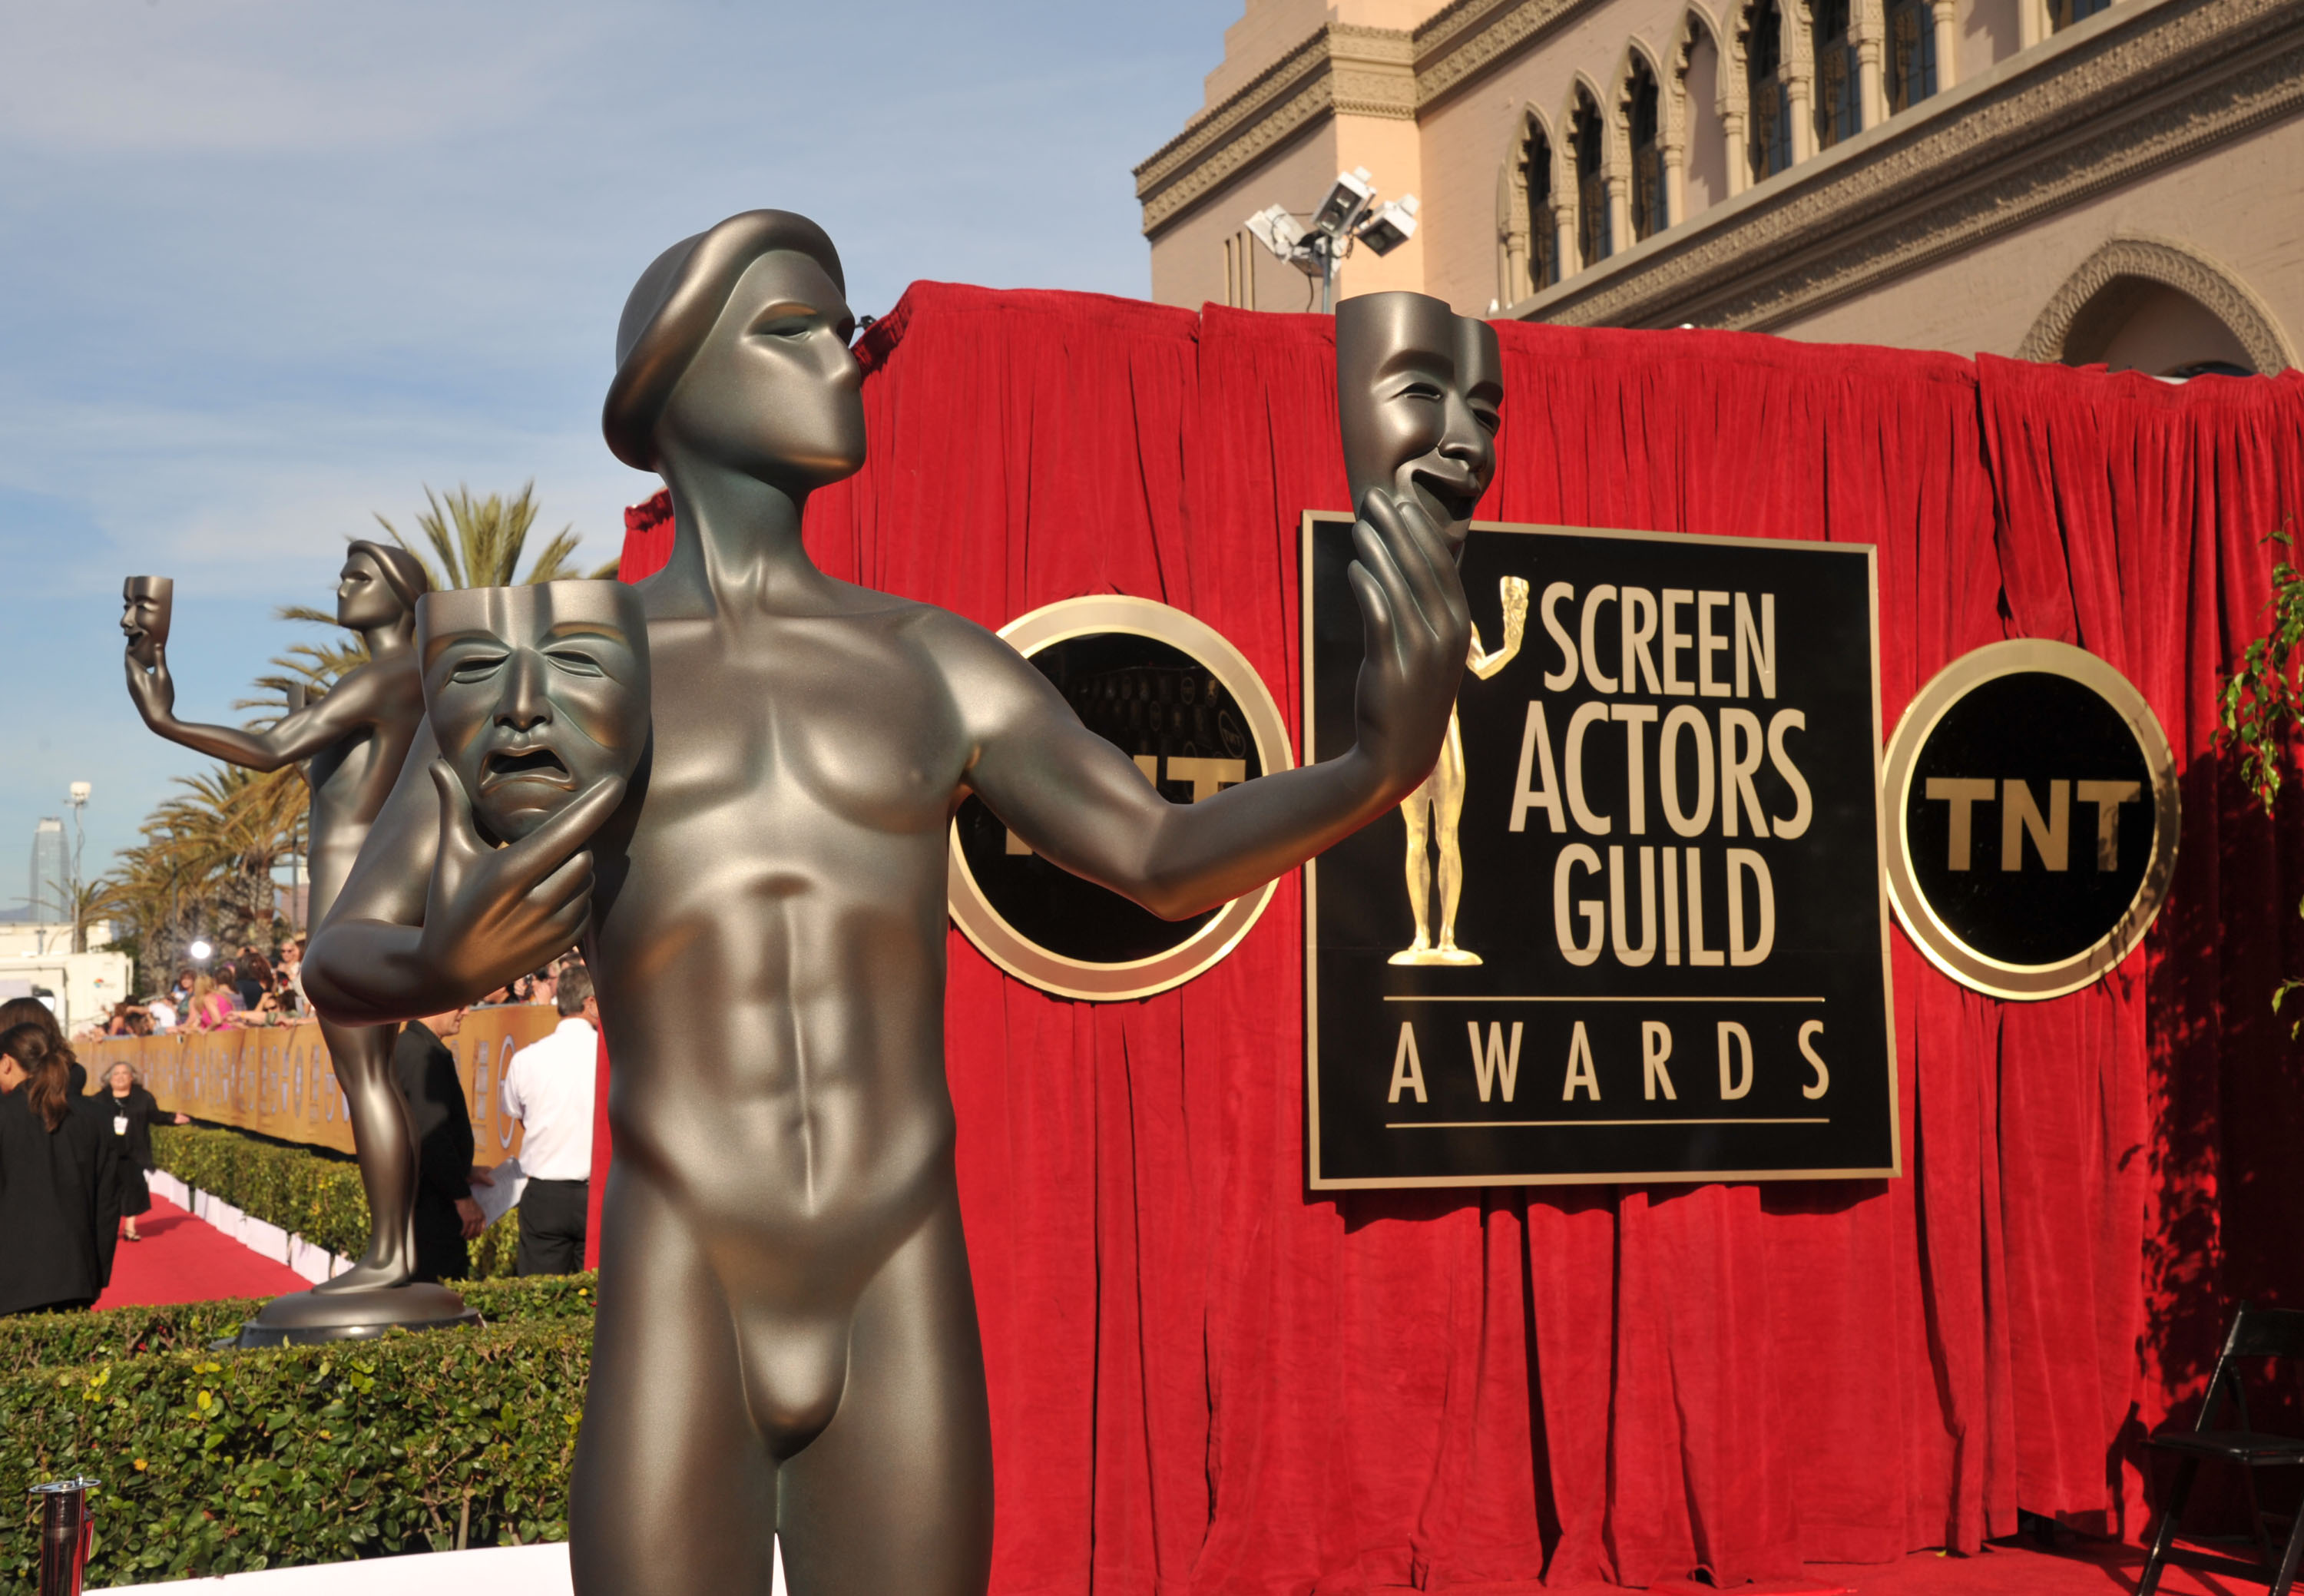 LOS ANGELES, CA - JANUARY 29:  The Actor statue displayed at The 18th Annual Screen Actors Guild Awards broadcasted on TNT/TBS at The Shrine Auditorium on January 29, 2012 in Los Angeles, California. (Photo by Lester Cohen/WireImage) 22005_007_LC_0002.JPG